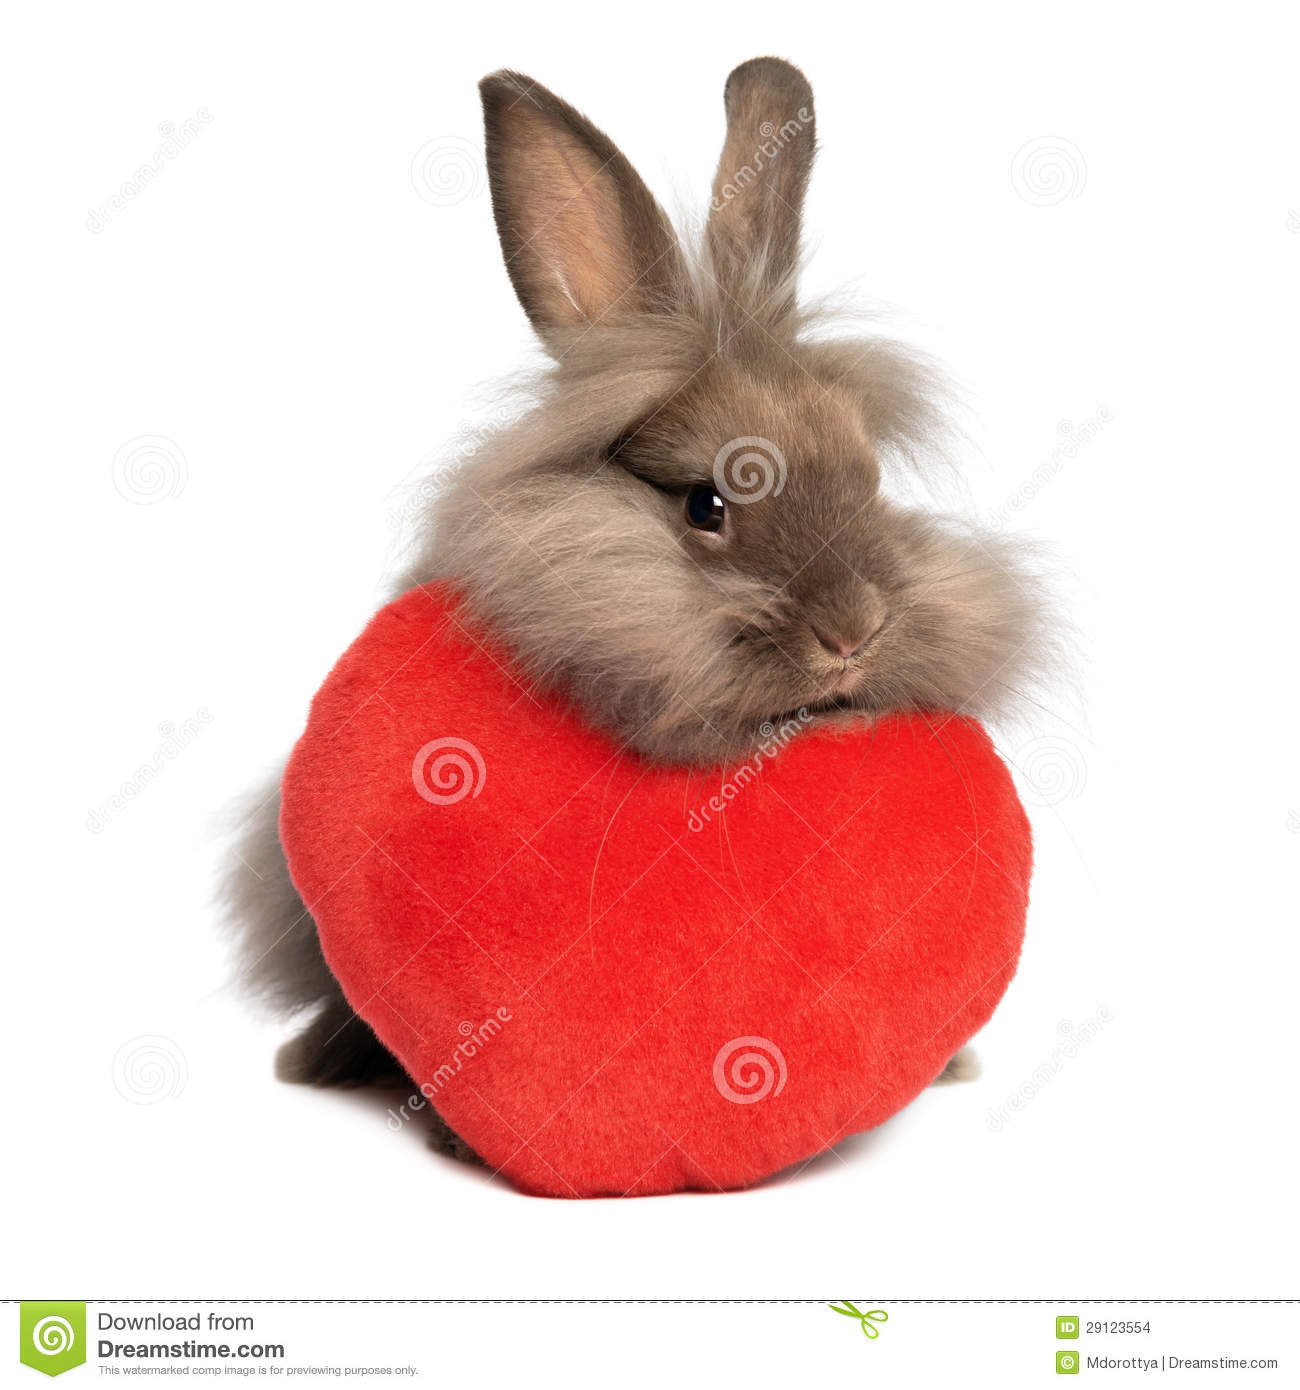 Schön A Valentine Chocolate Lionhead Bunny Rabbit With A Red Heart